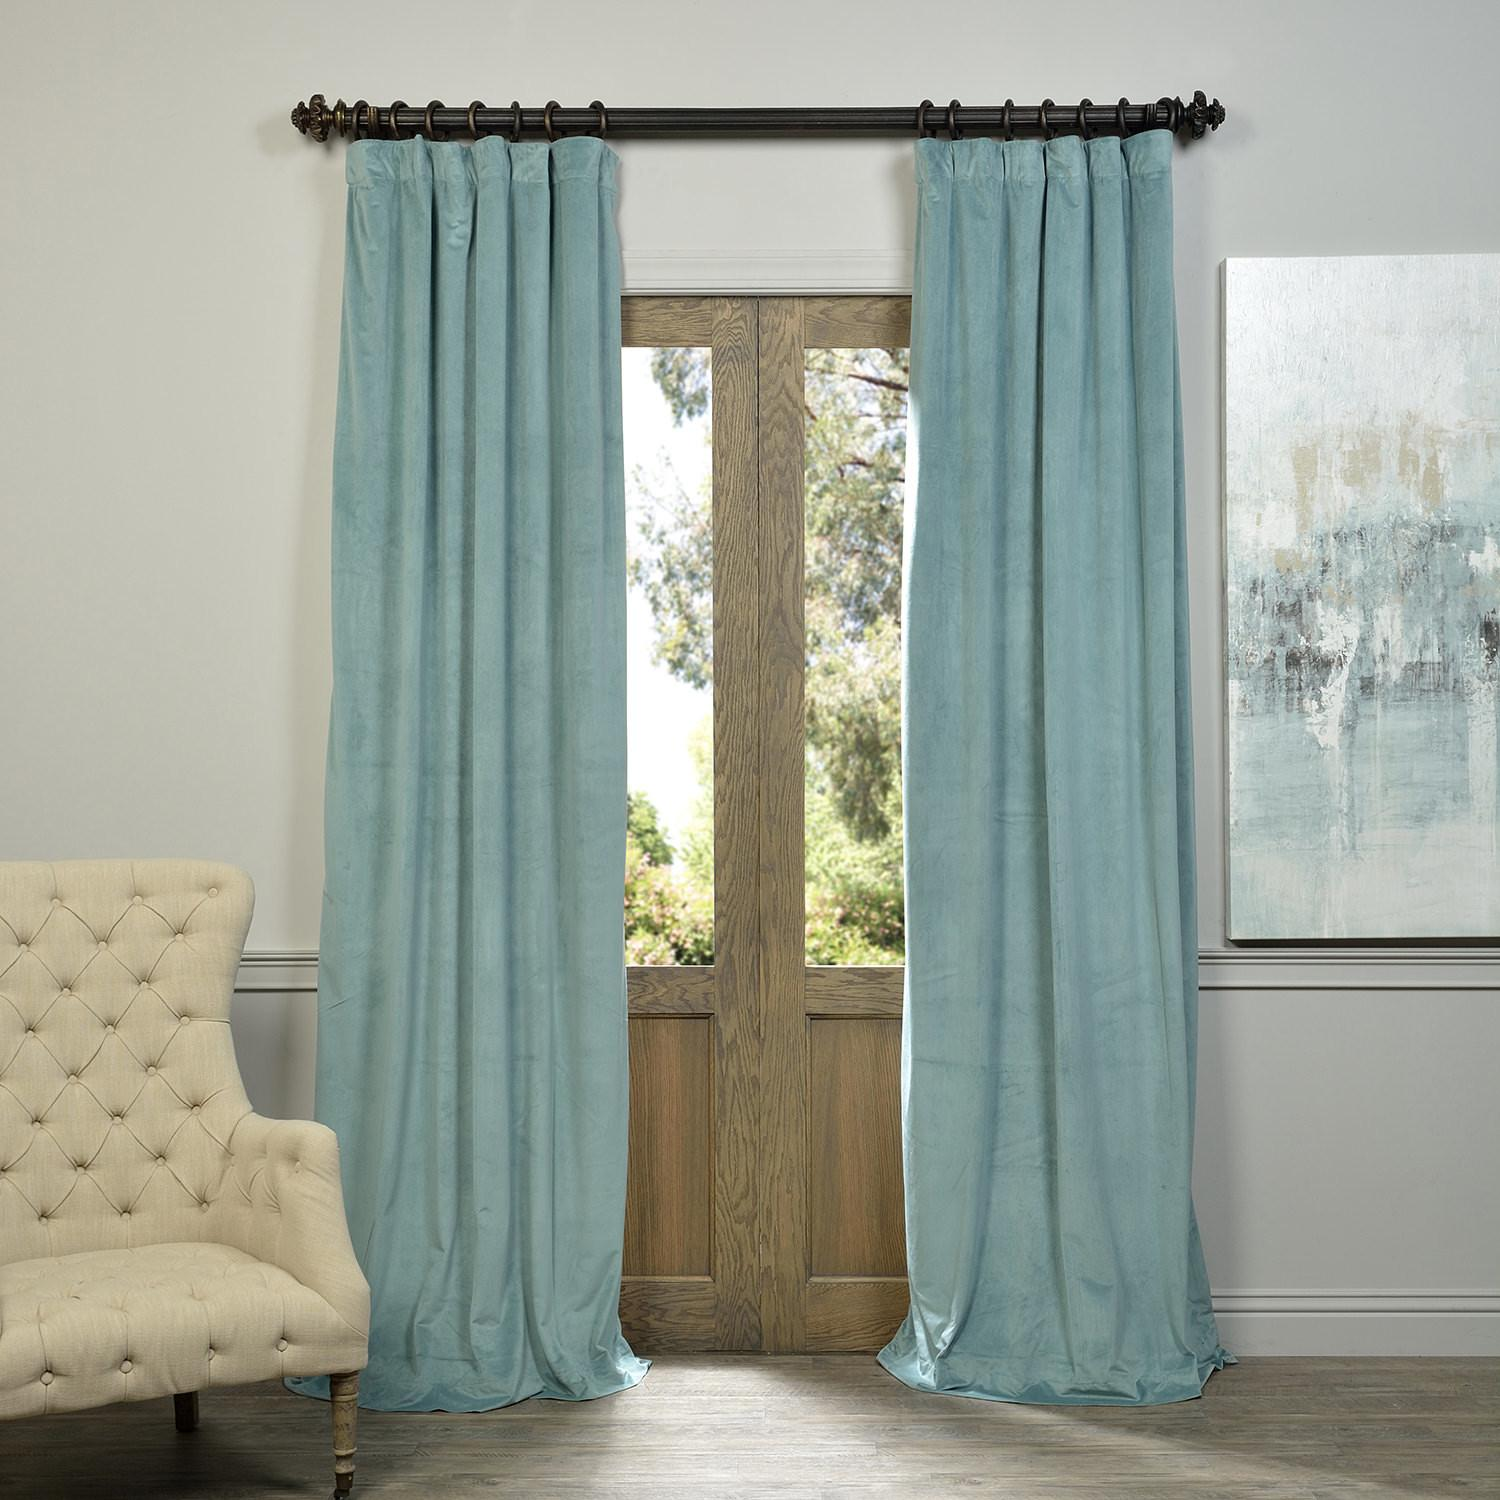 Signature Aqua Mist Blackout Velvet Curtains Drapes Decoratorist 36746